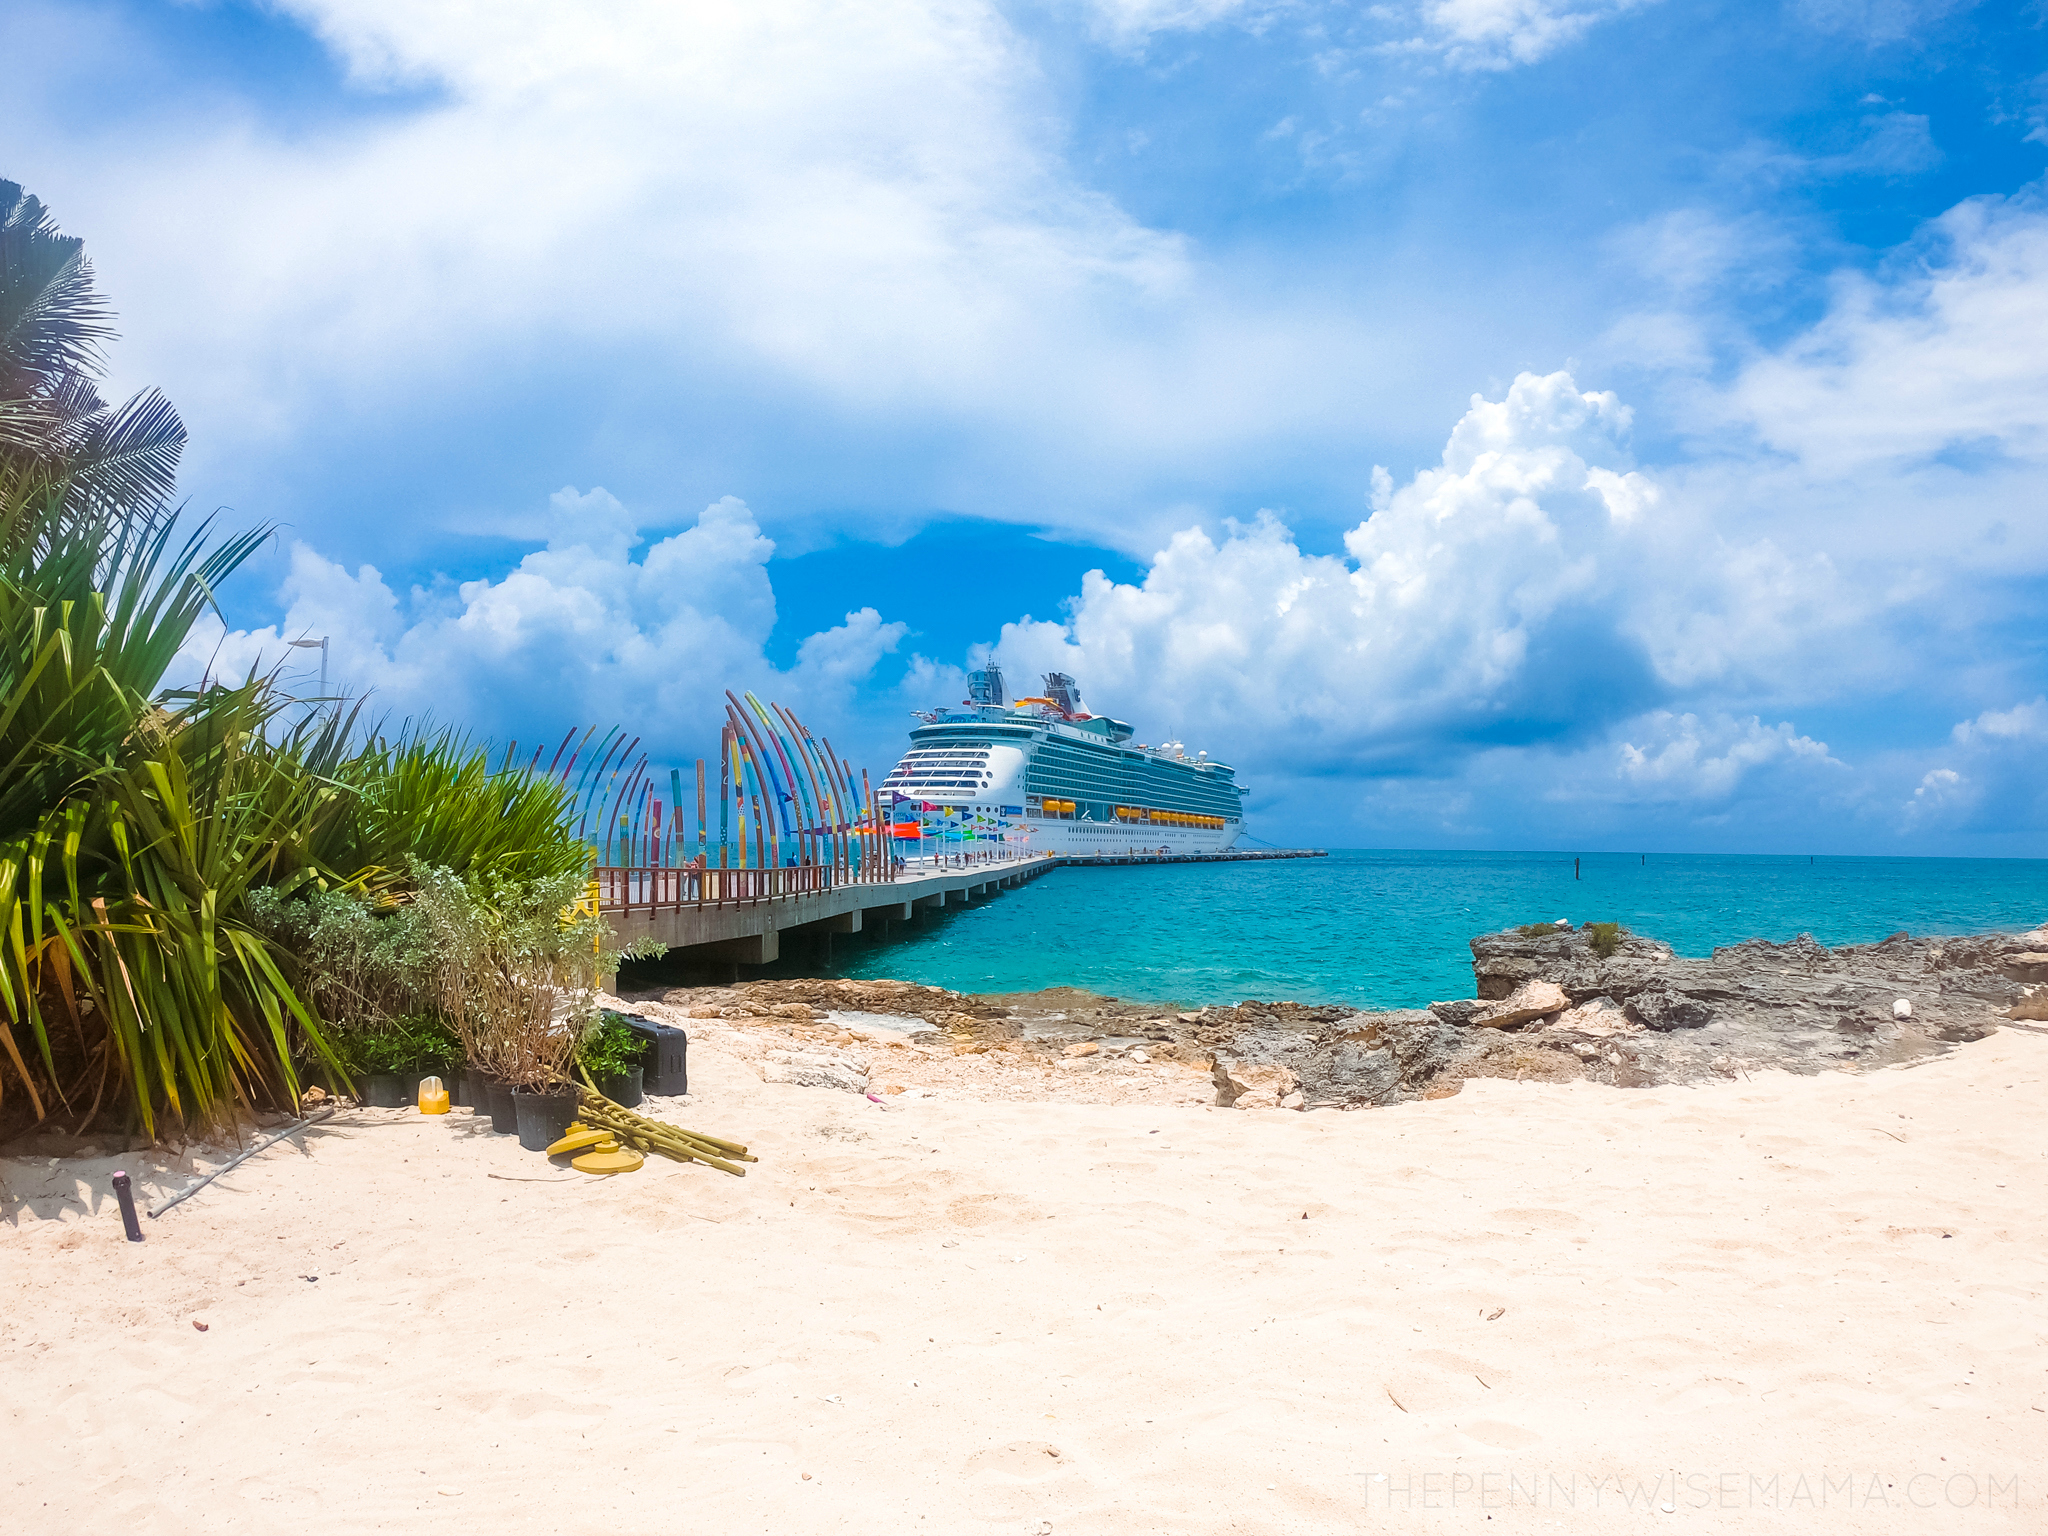 Royal Caribbean's Navigator of the Seas Docked at Perfect Day at CocoCay